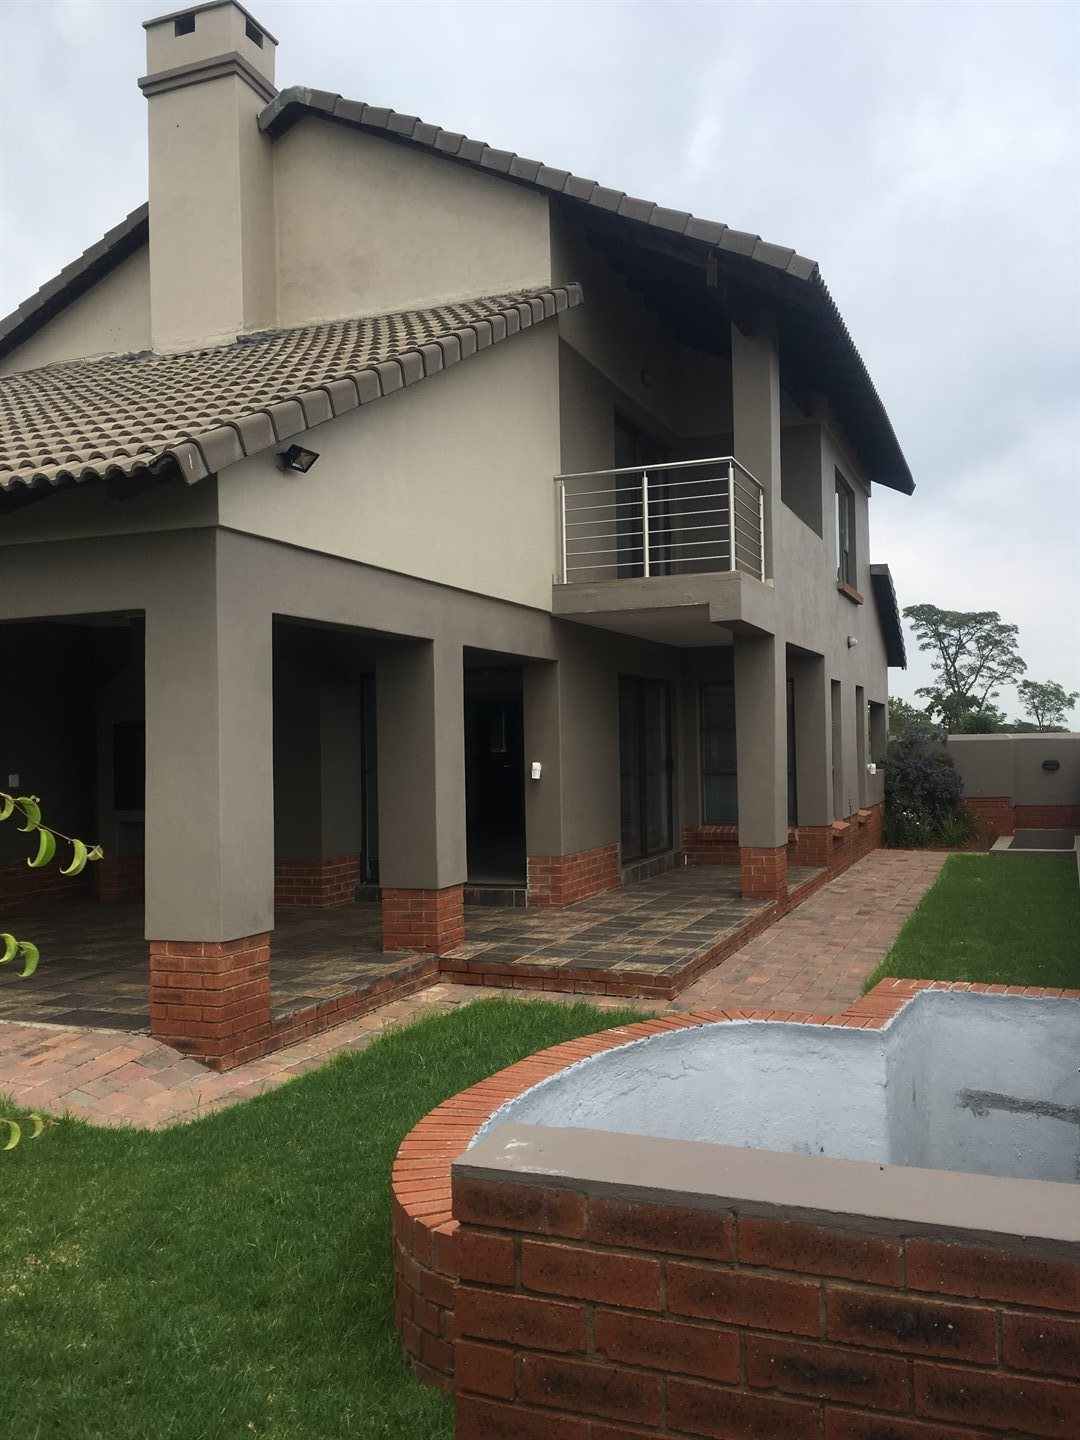 Property and Houses for sale in Kameeldrift West, Townhouse, 3 Bedrooms - ZAR 2,300,000